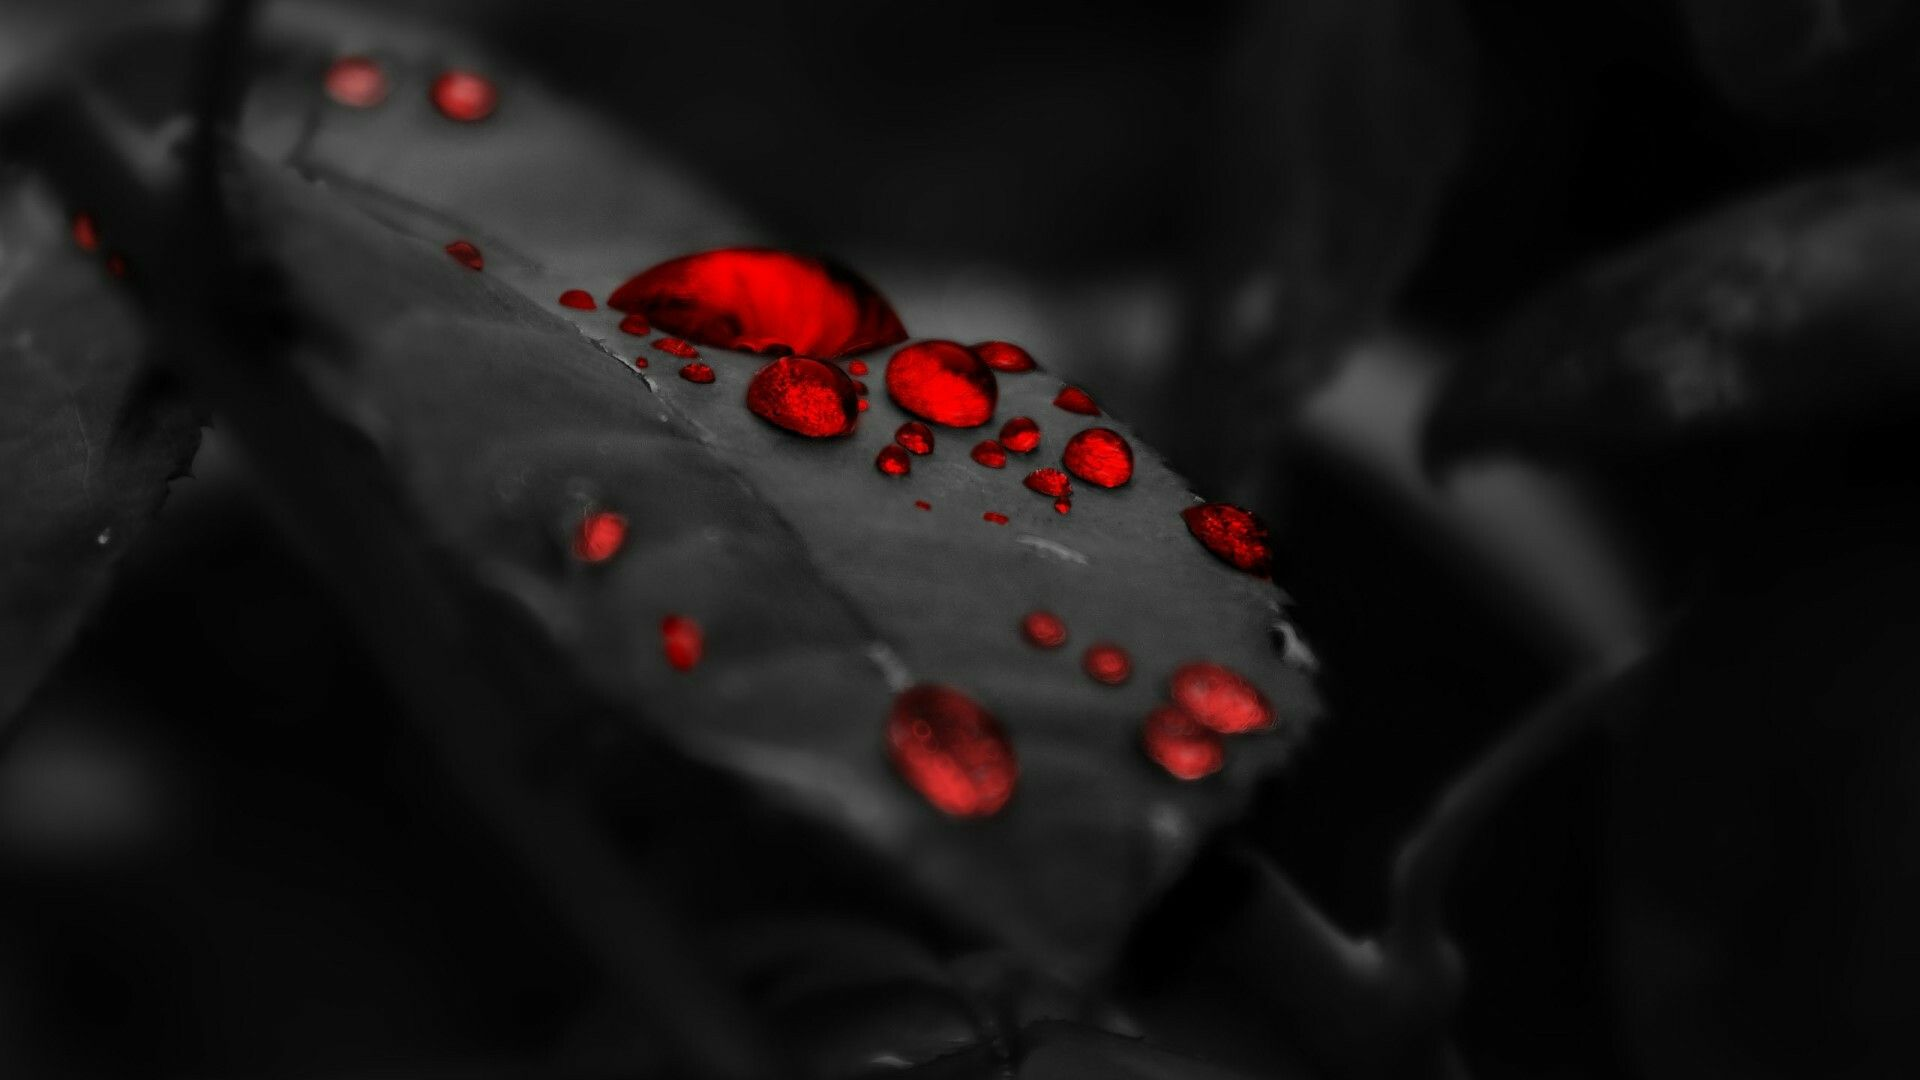 The Filtor Of Red And Black Is The Best For The Ediring Black Wallpaper 1080p Wallpaper Android Wallpaper Black